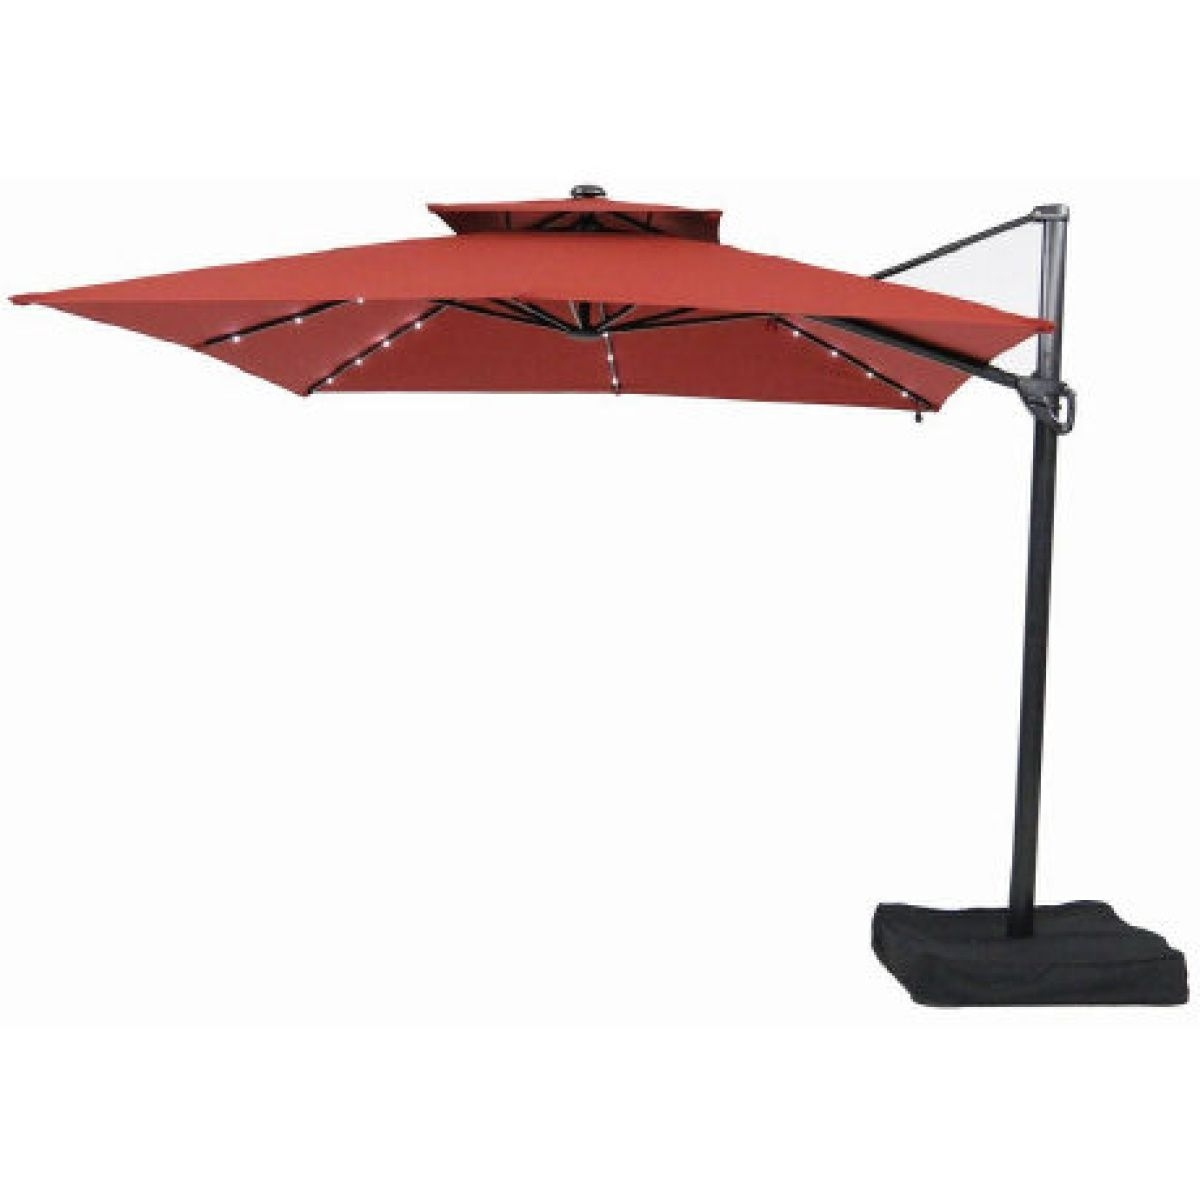 Popular Cantilever Patio Umbrellas Won't Obstruct The View (View 11 of 20)